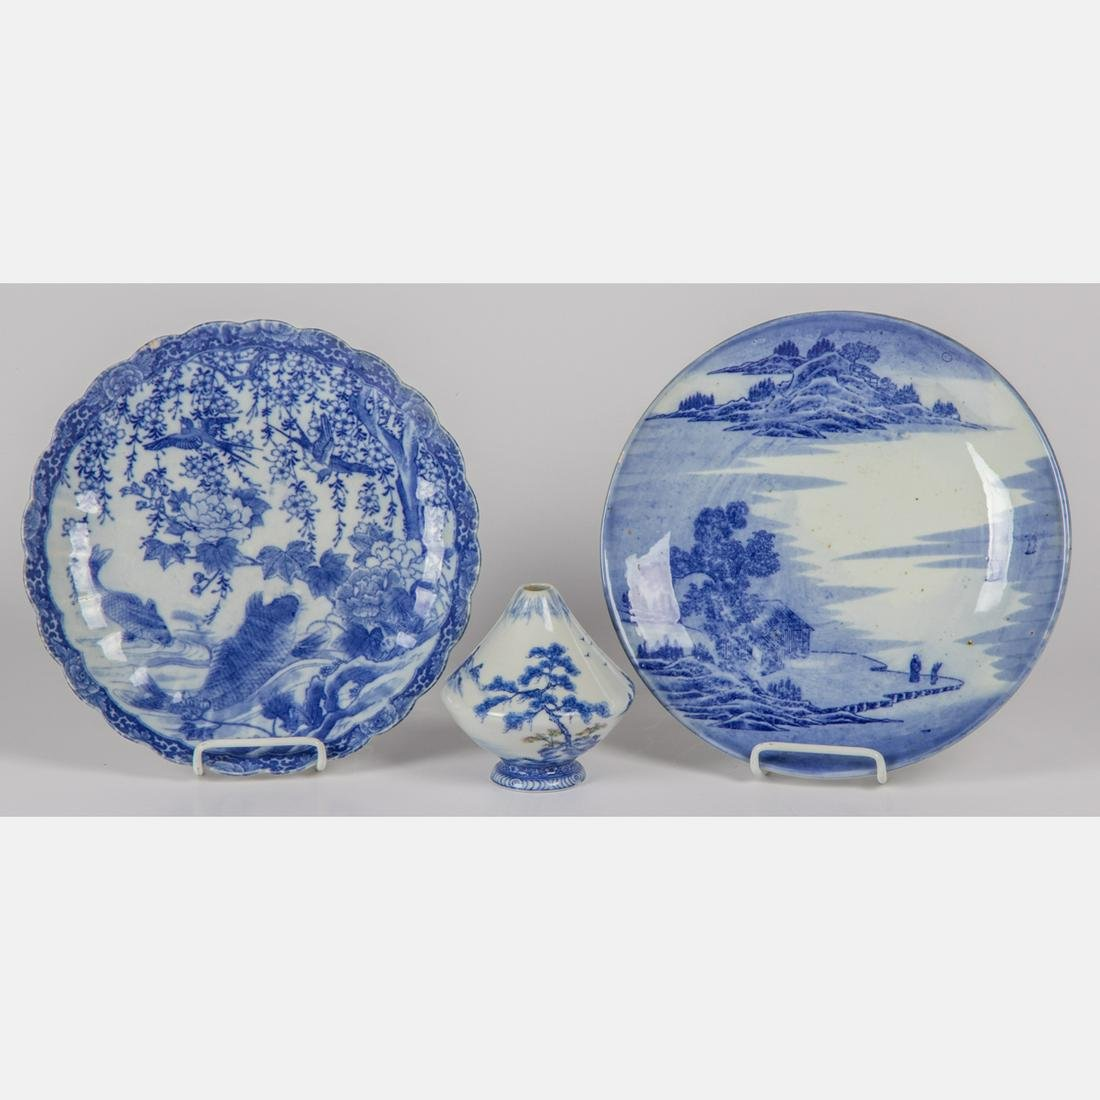 A Group of Three Japanese Blue and White Porcelain